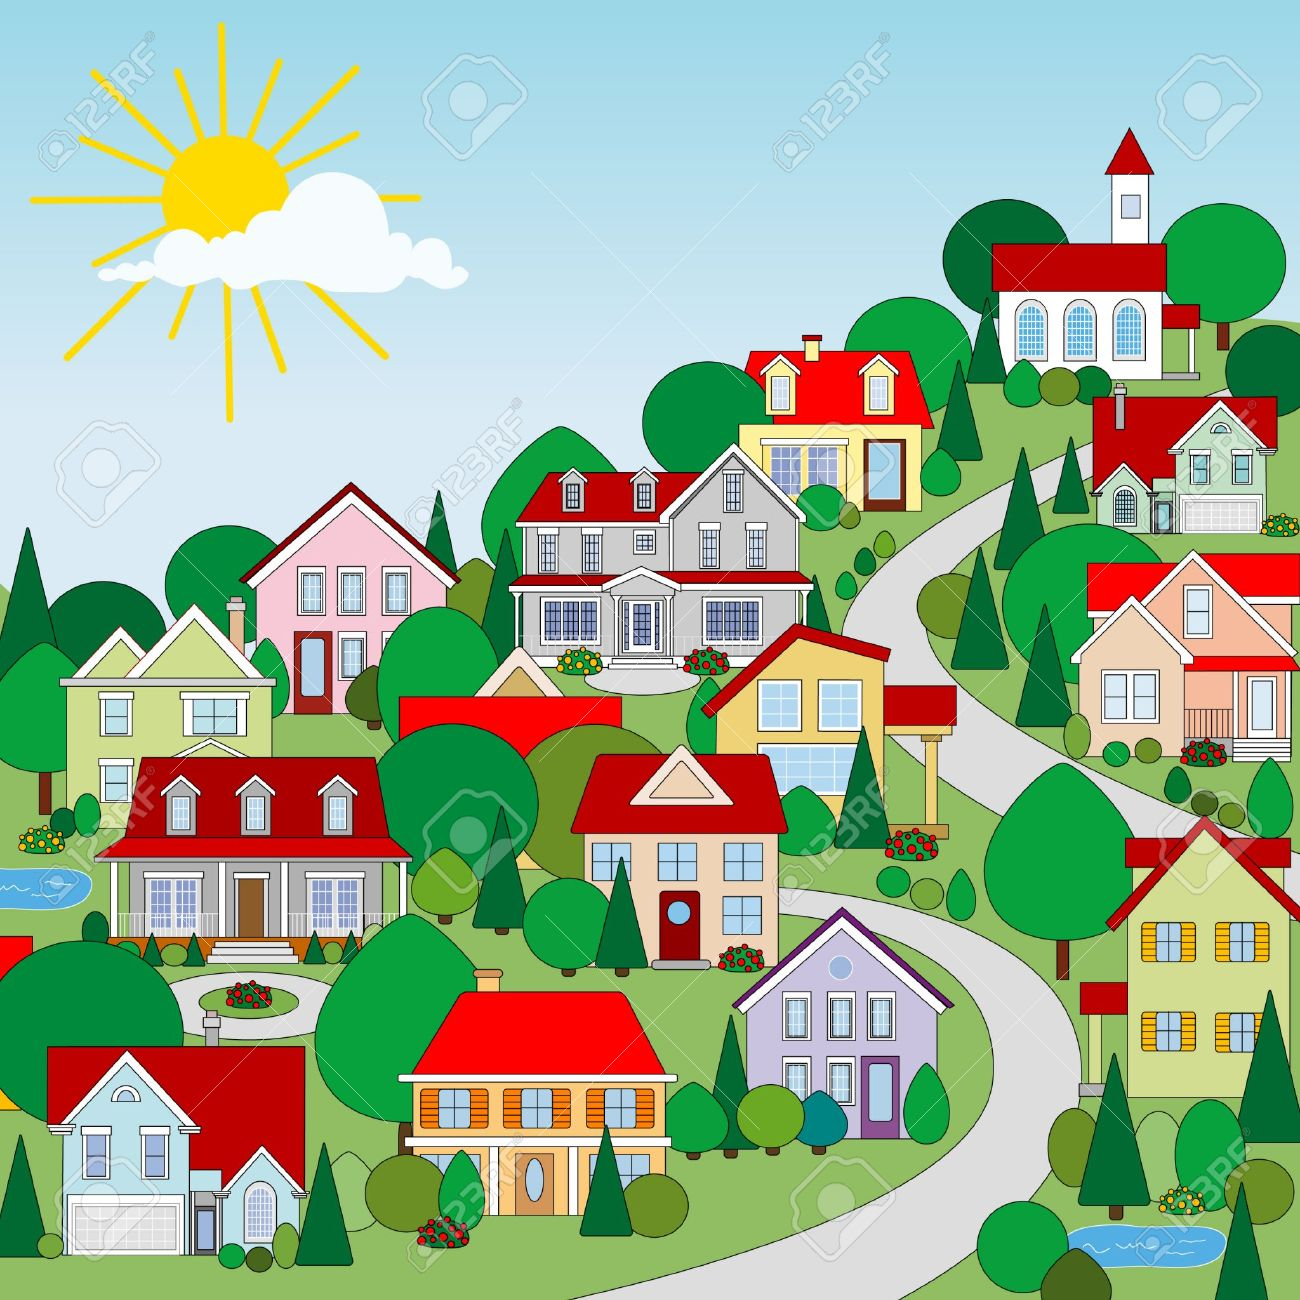 Village clipart #9, Download drawings